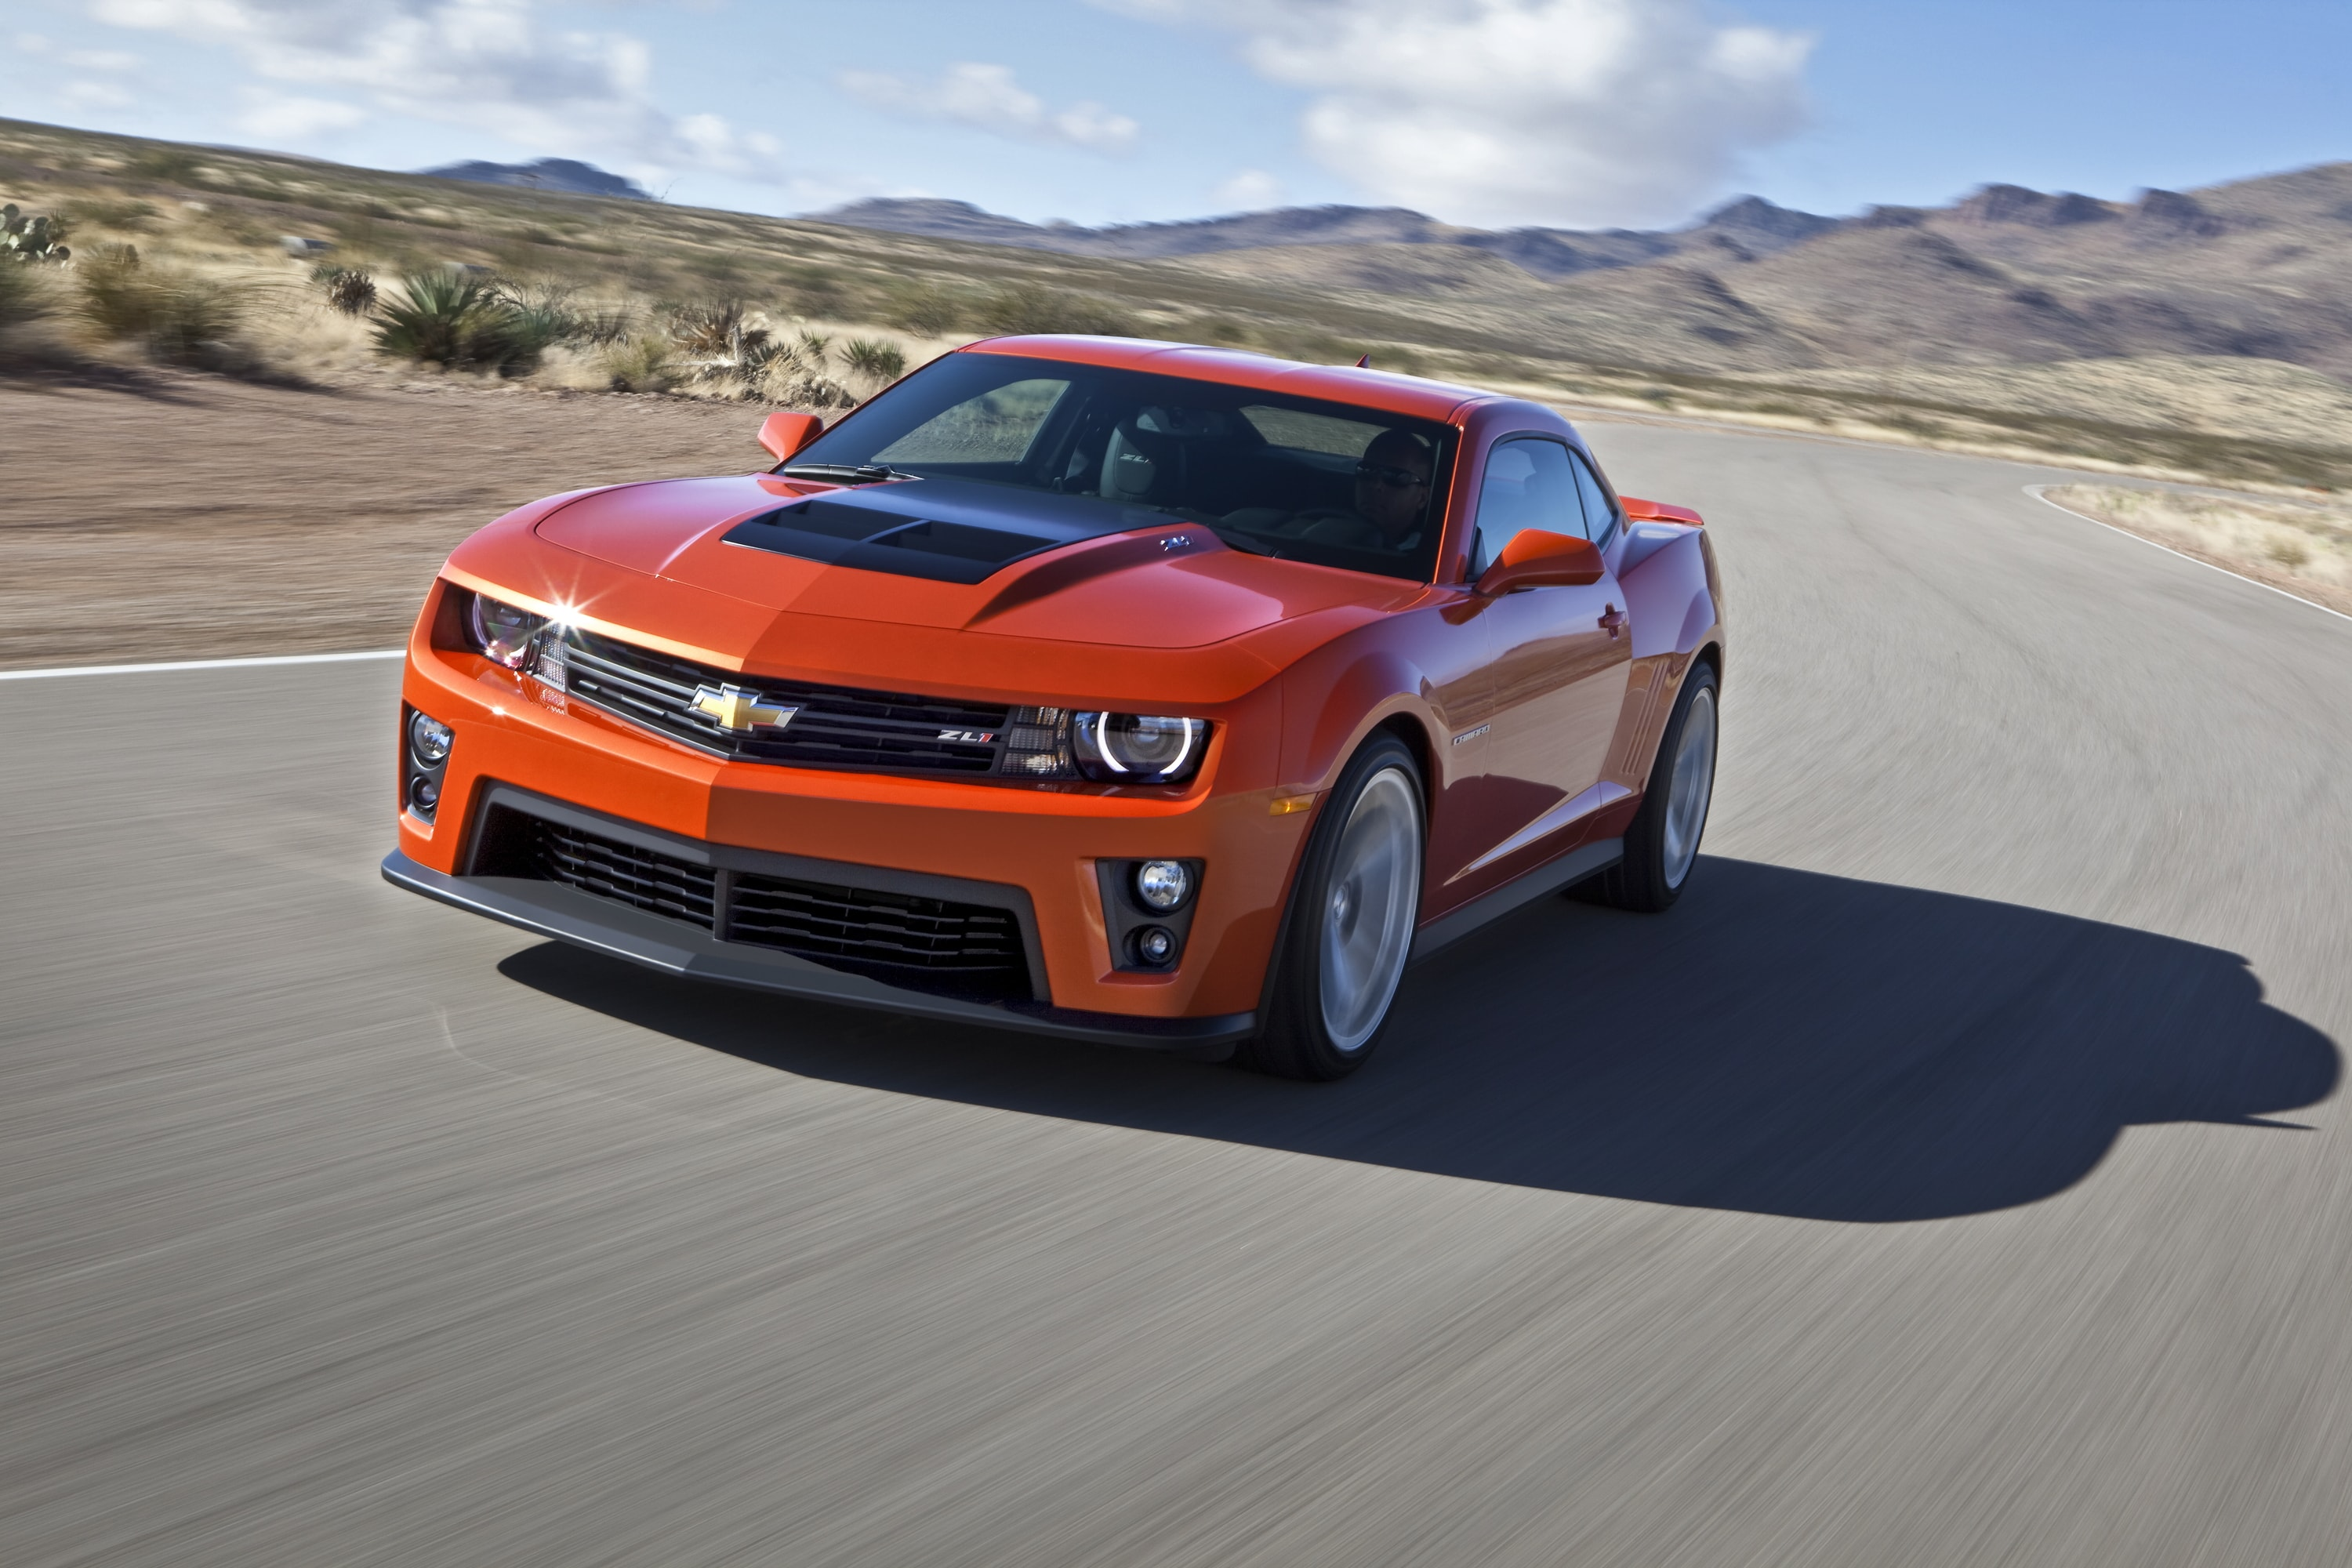 Chevy Camaro ZL1 Backgrounds